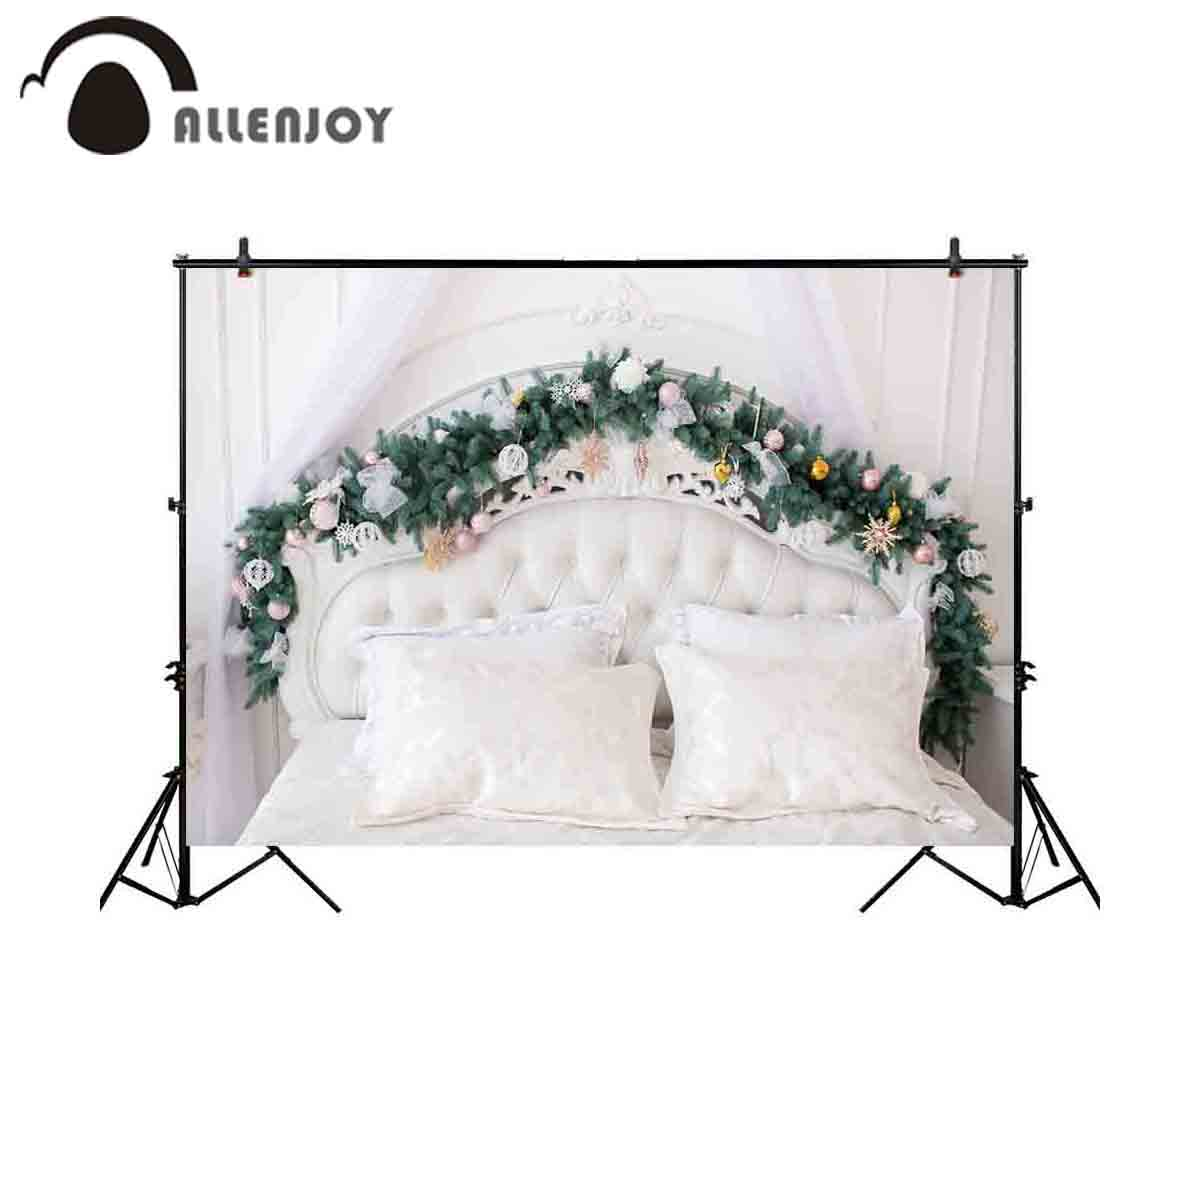 Allenjoy photography background Christmas headboard tufted pine tree leaf backdrop photocall photo studio photobooth fabric allenjoy background photography winter snow tree white bokeh christmas backdrop nature photocall prop customize original design